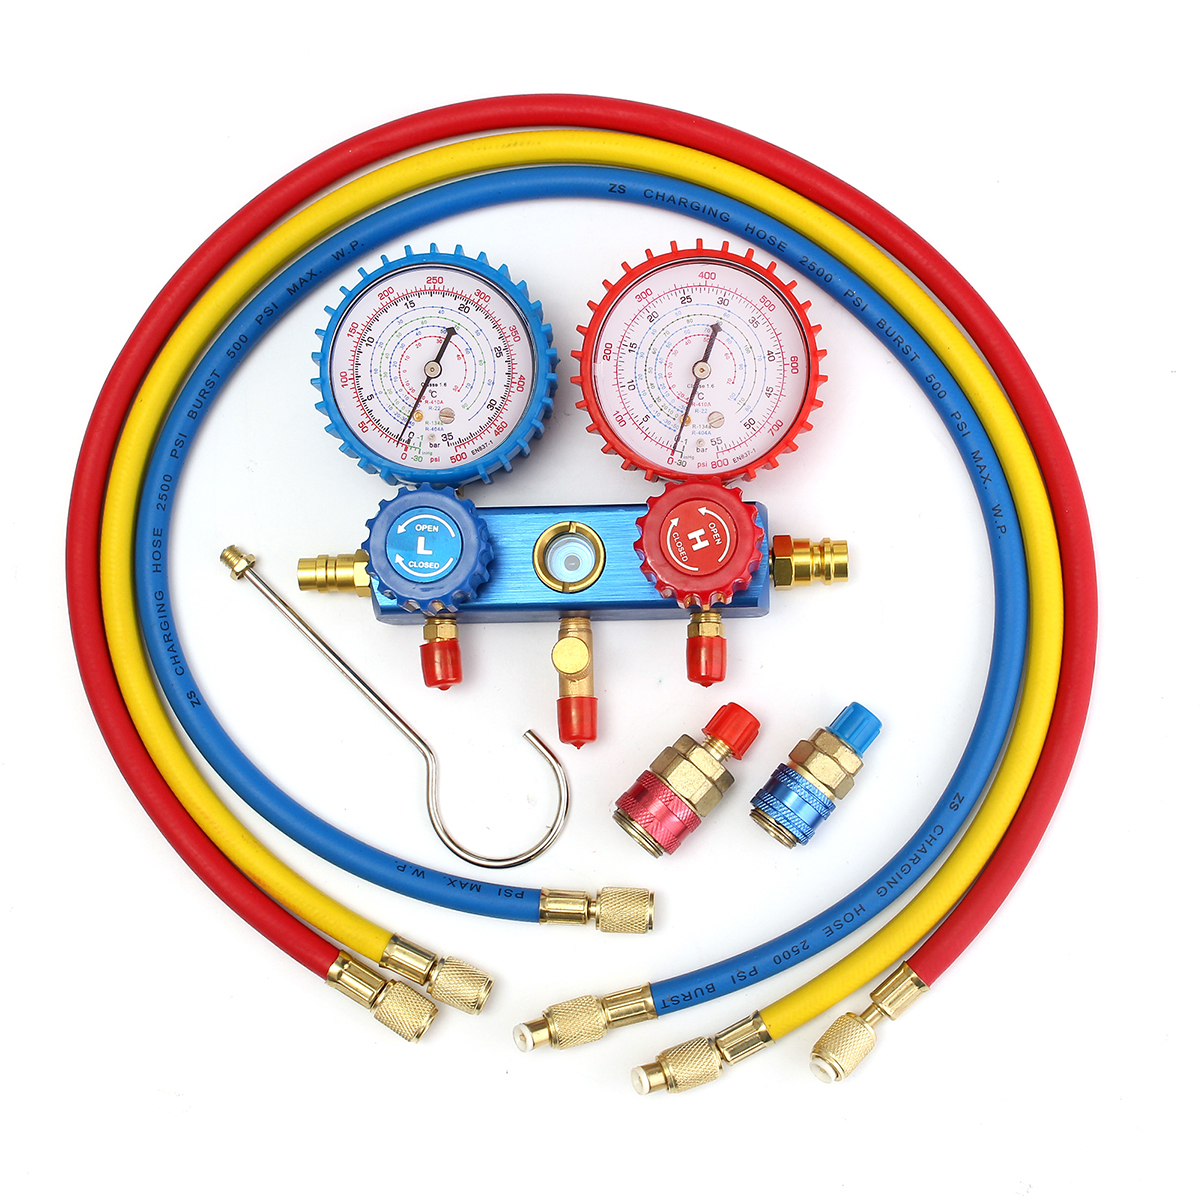 Auto Manifold Gauge Set A/C R134A Refrigerant Charging Hose with 2 Quick Coupler for R134A Air-conditioning Refrigeration 2pcs auto car ac r134a h l quick coupler connector brass adapters 1 4sae air conditioning refrigerant manifold gauge page 4